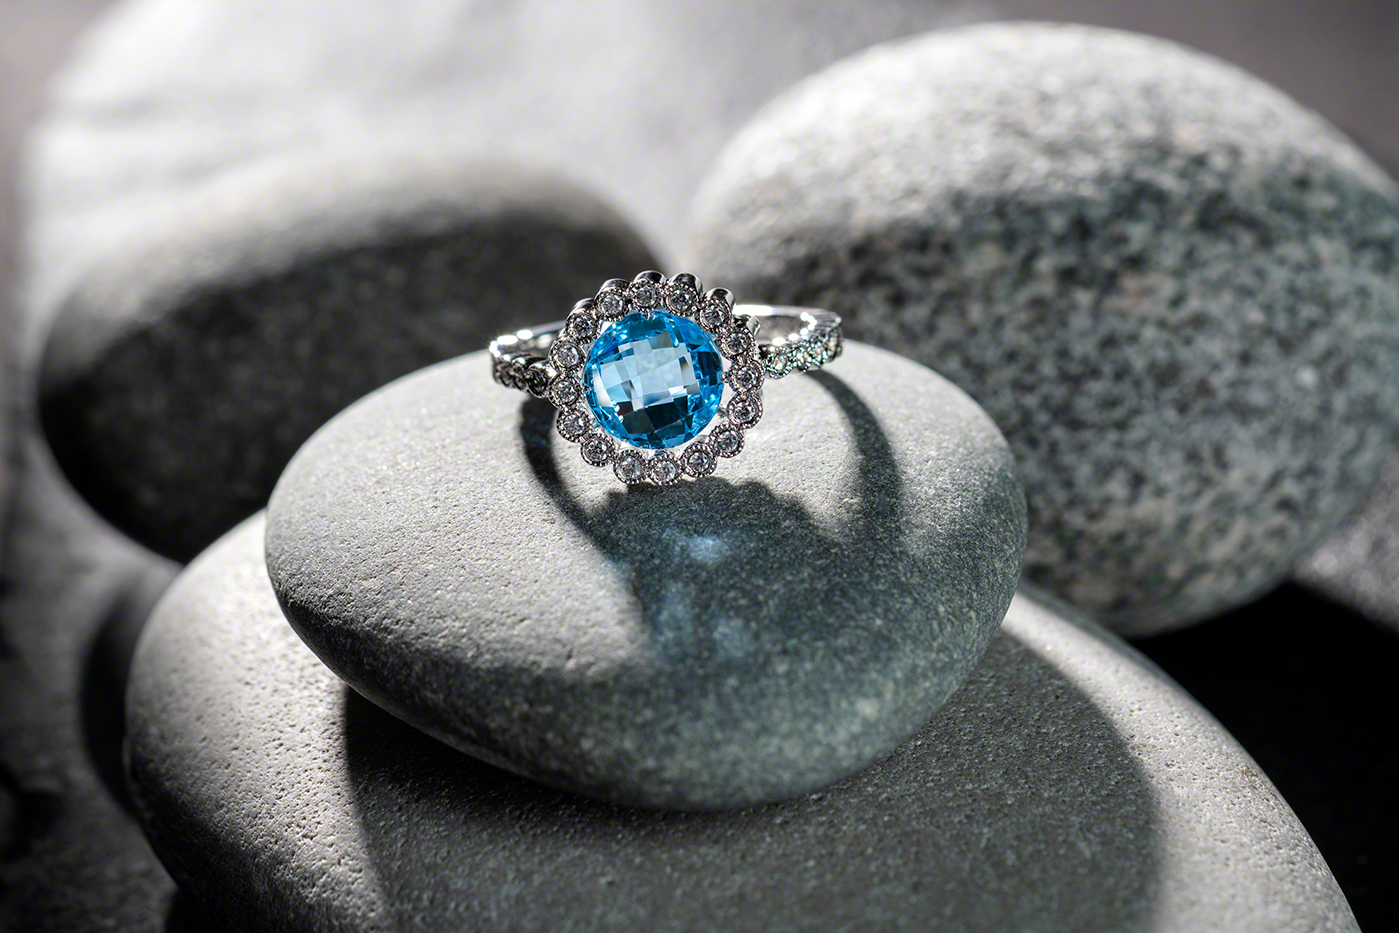 Silver ring with blue gem on North shore Lake Superior rocks